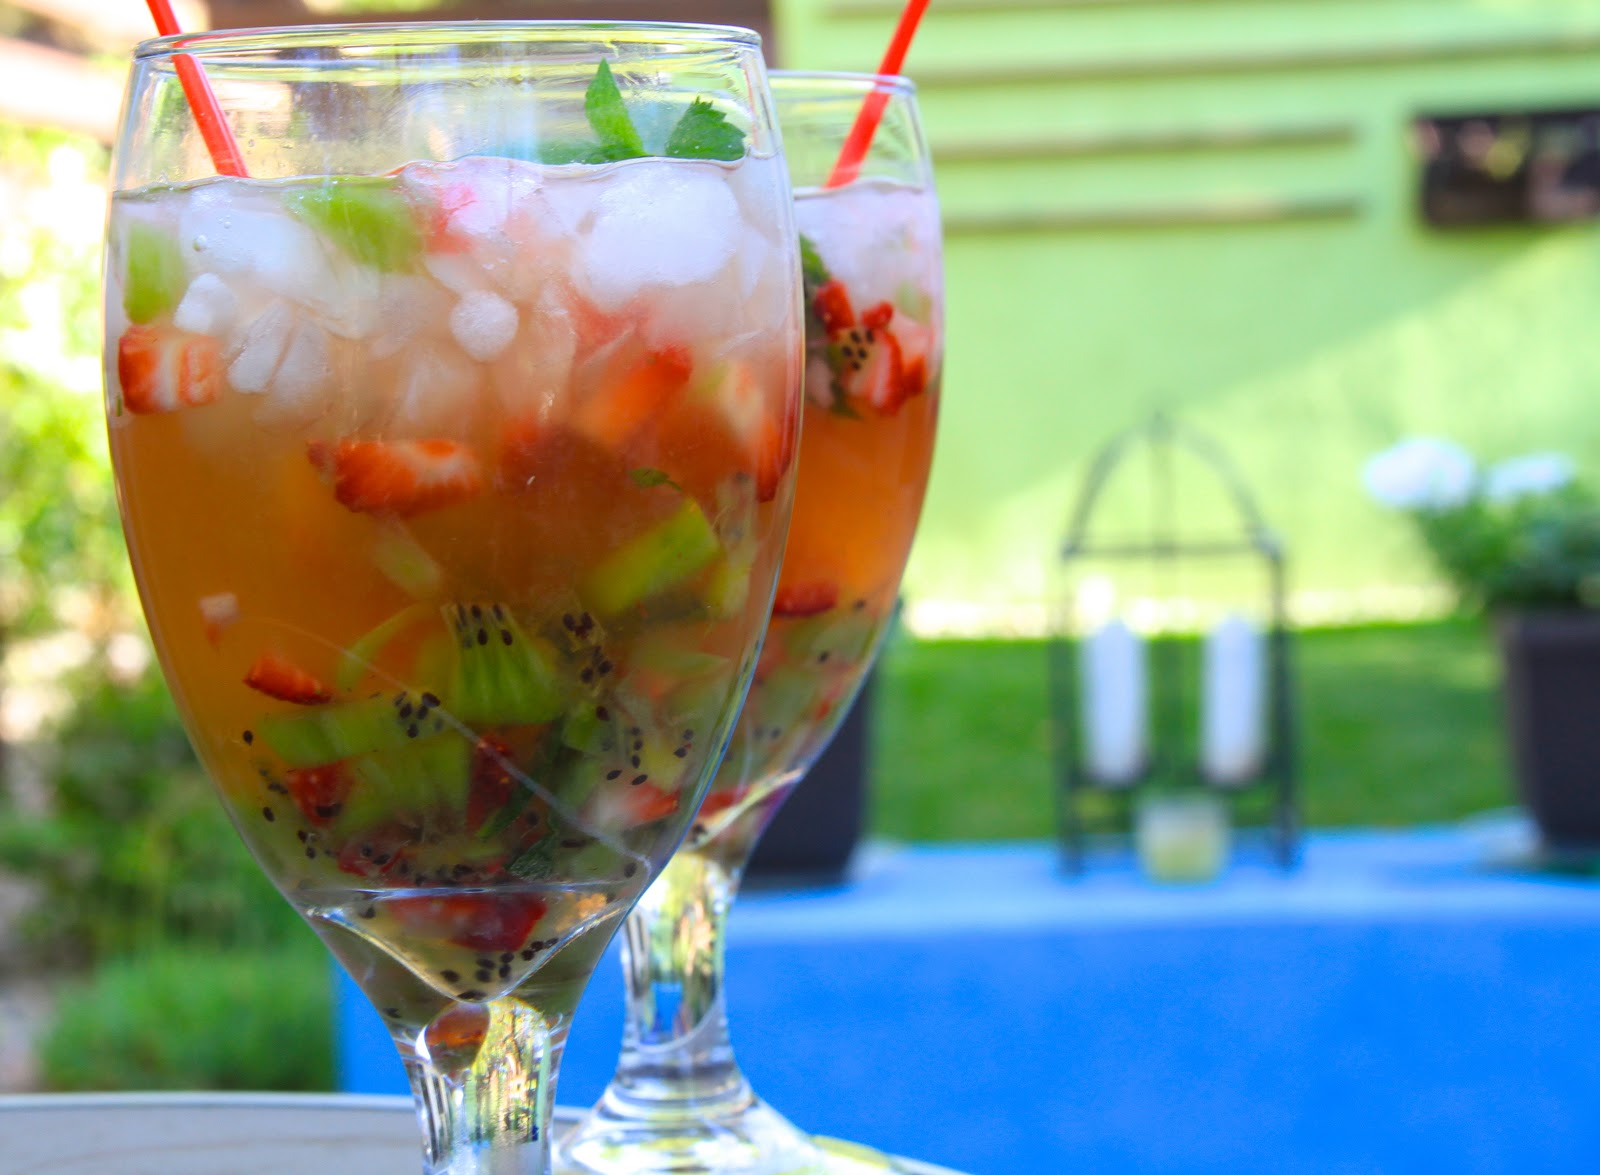 Kiwi Strawberry Caipirinha